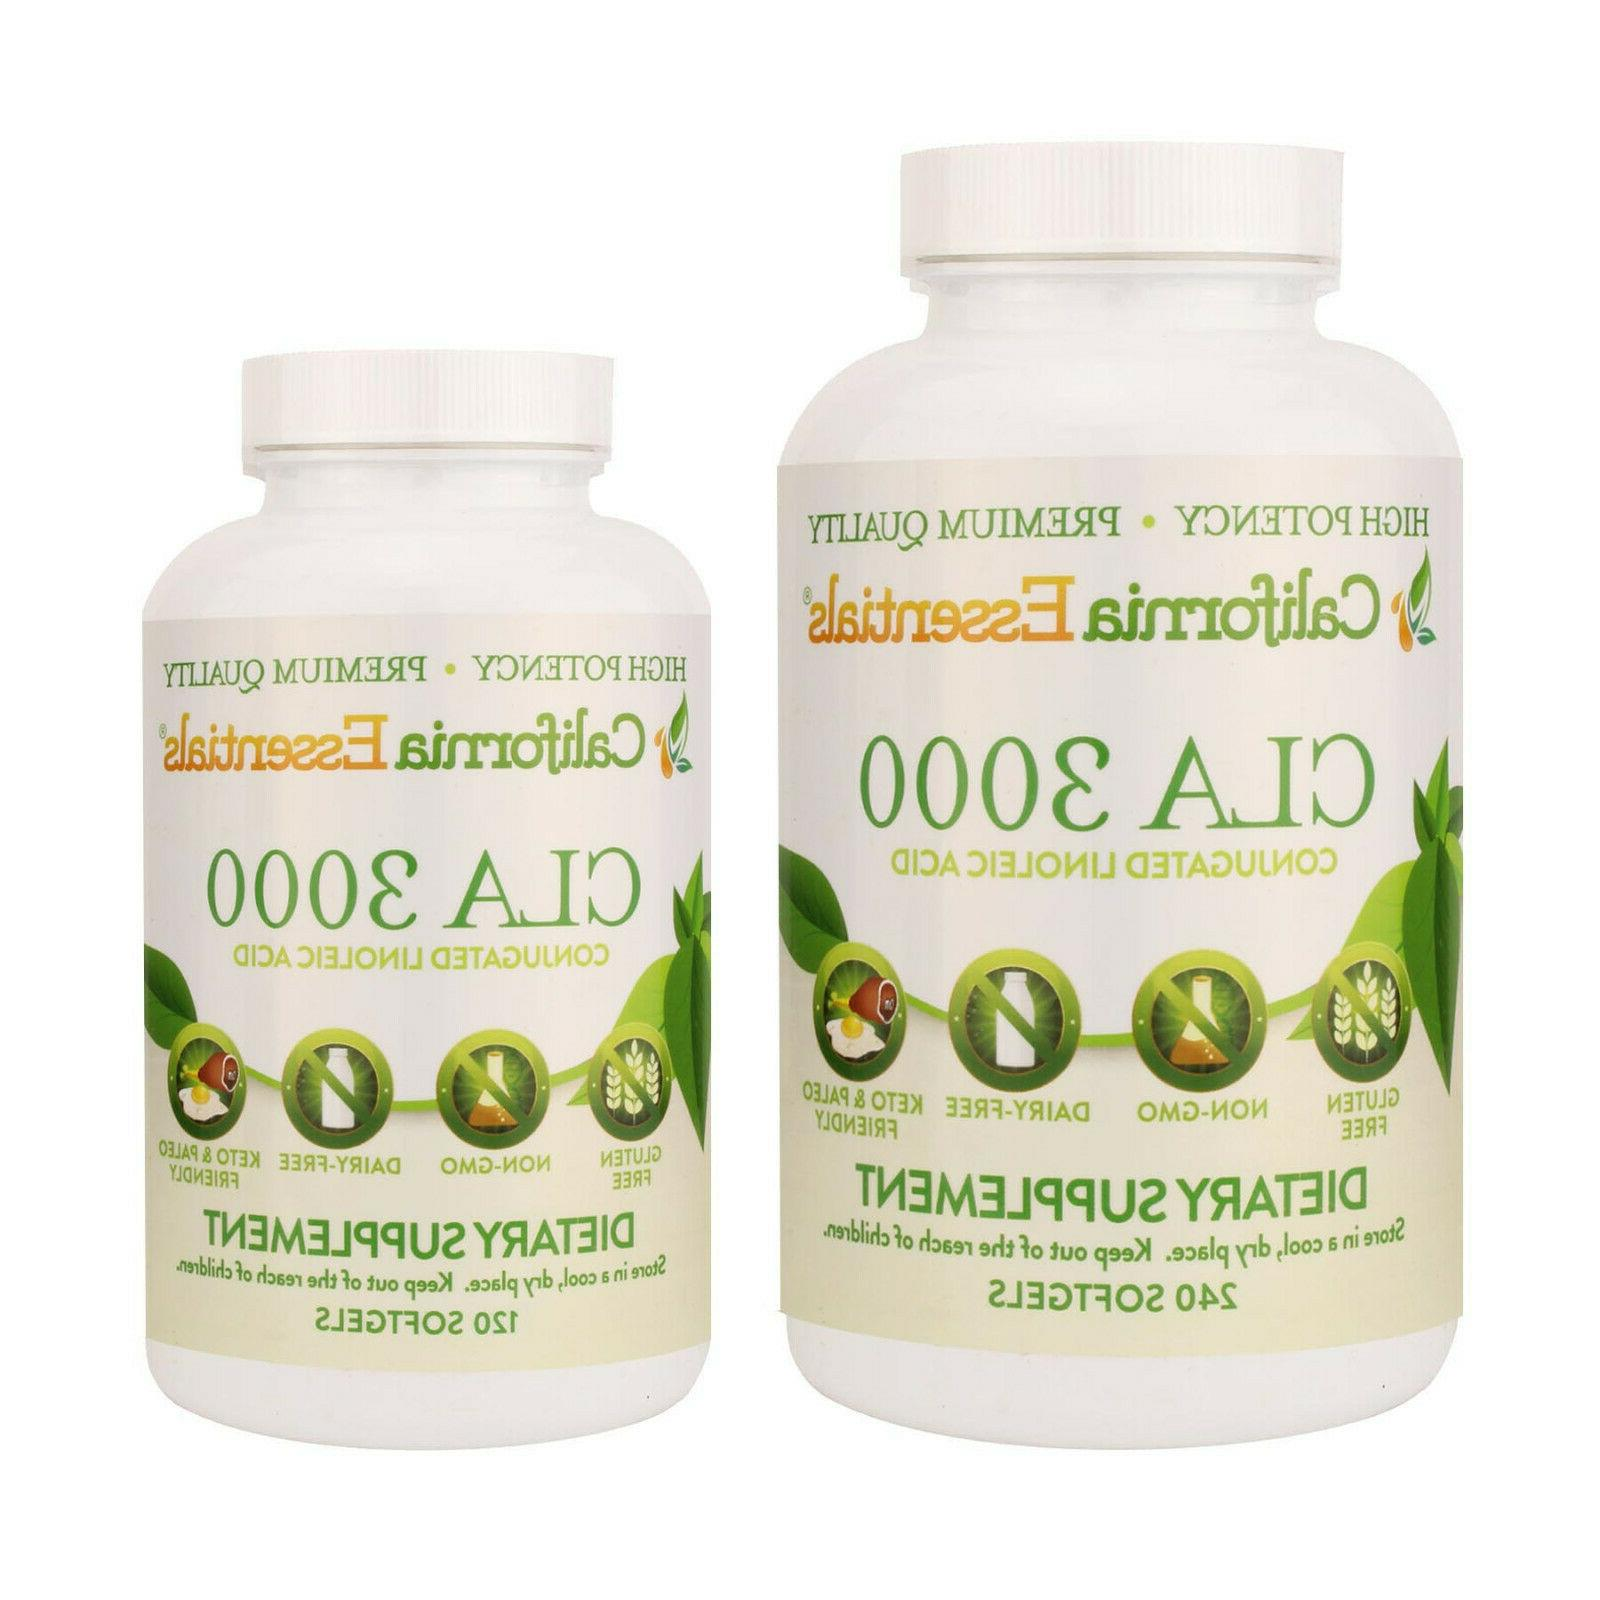 cla 3000 natural weight loss exercise enhancement